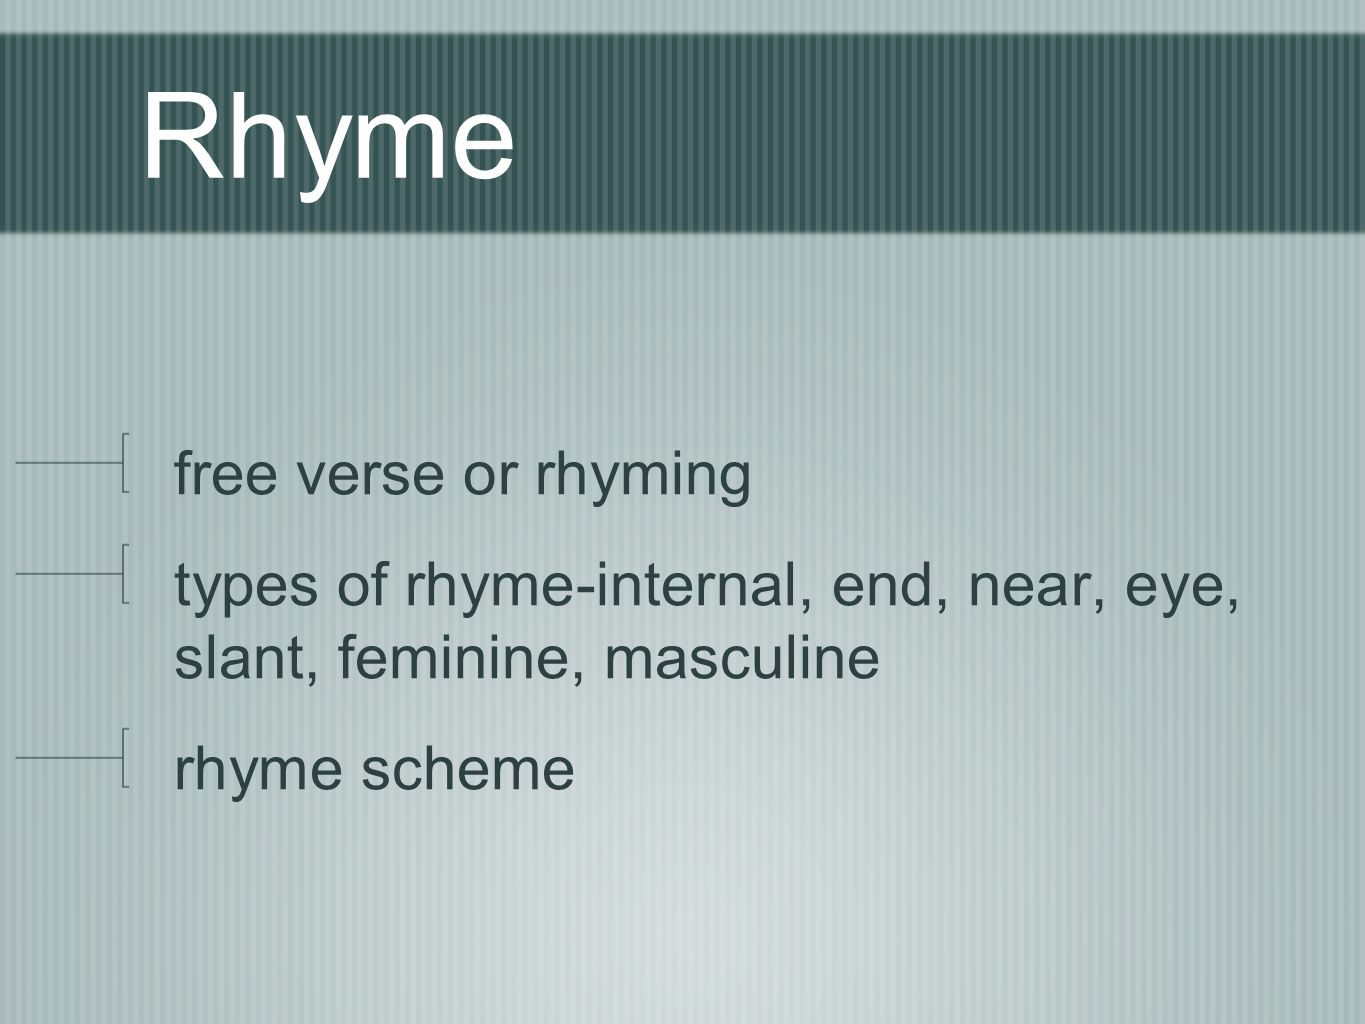 Rhyme free verse or rhyming